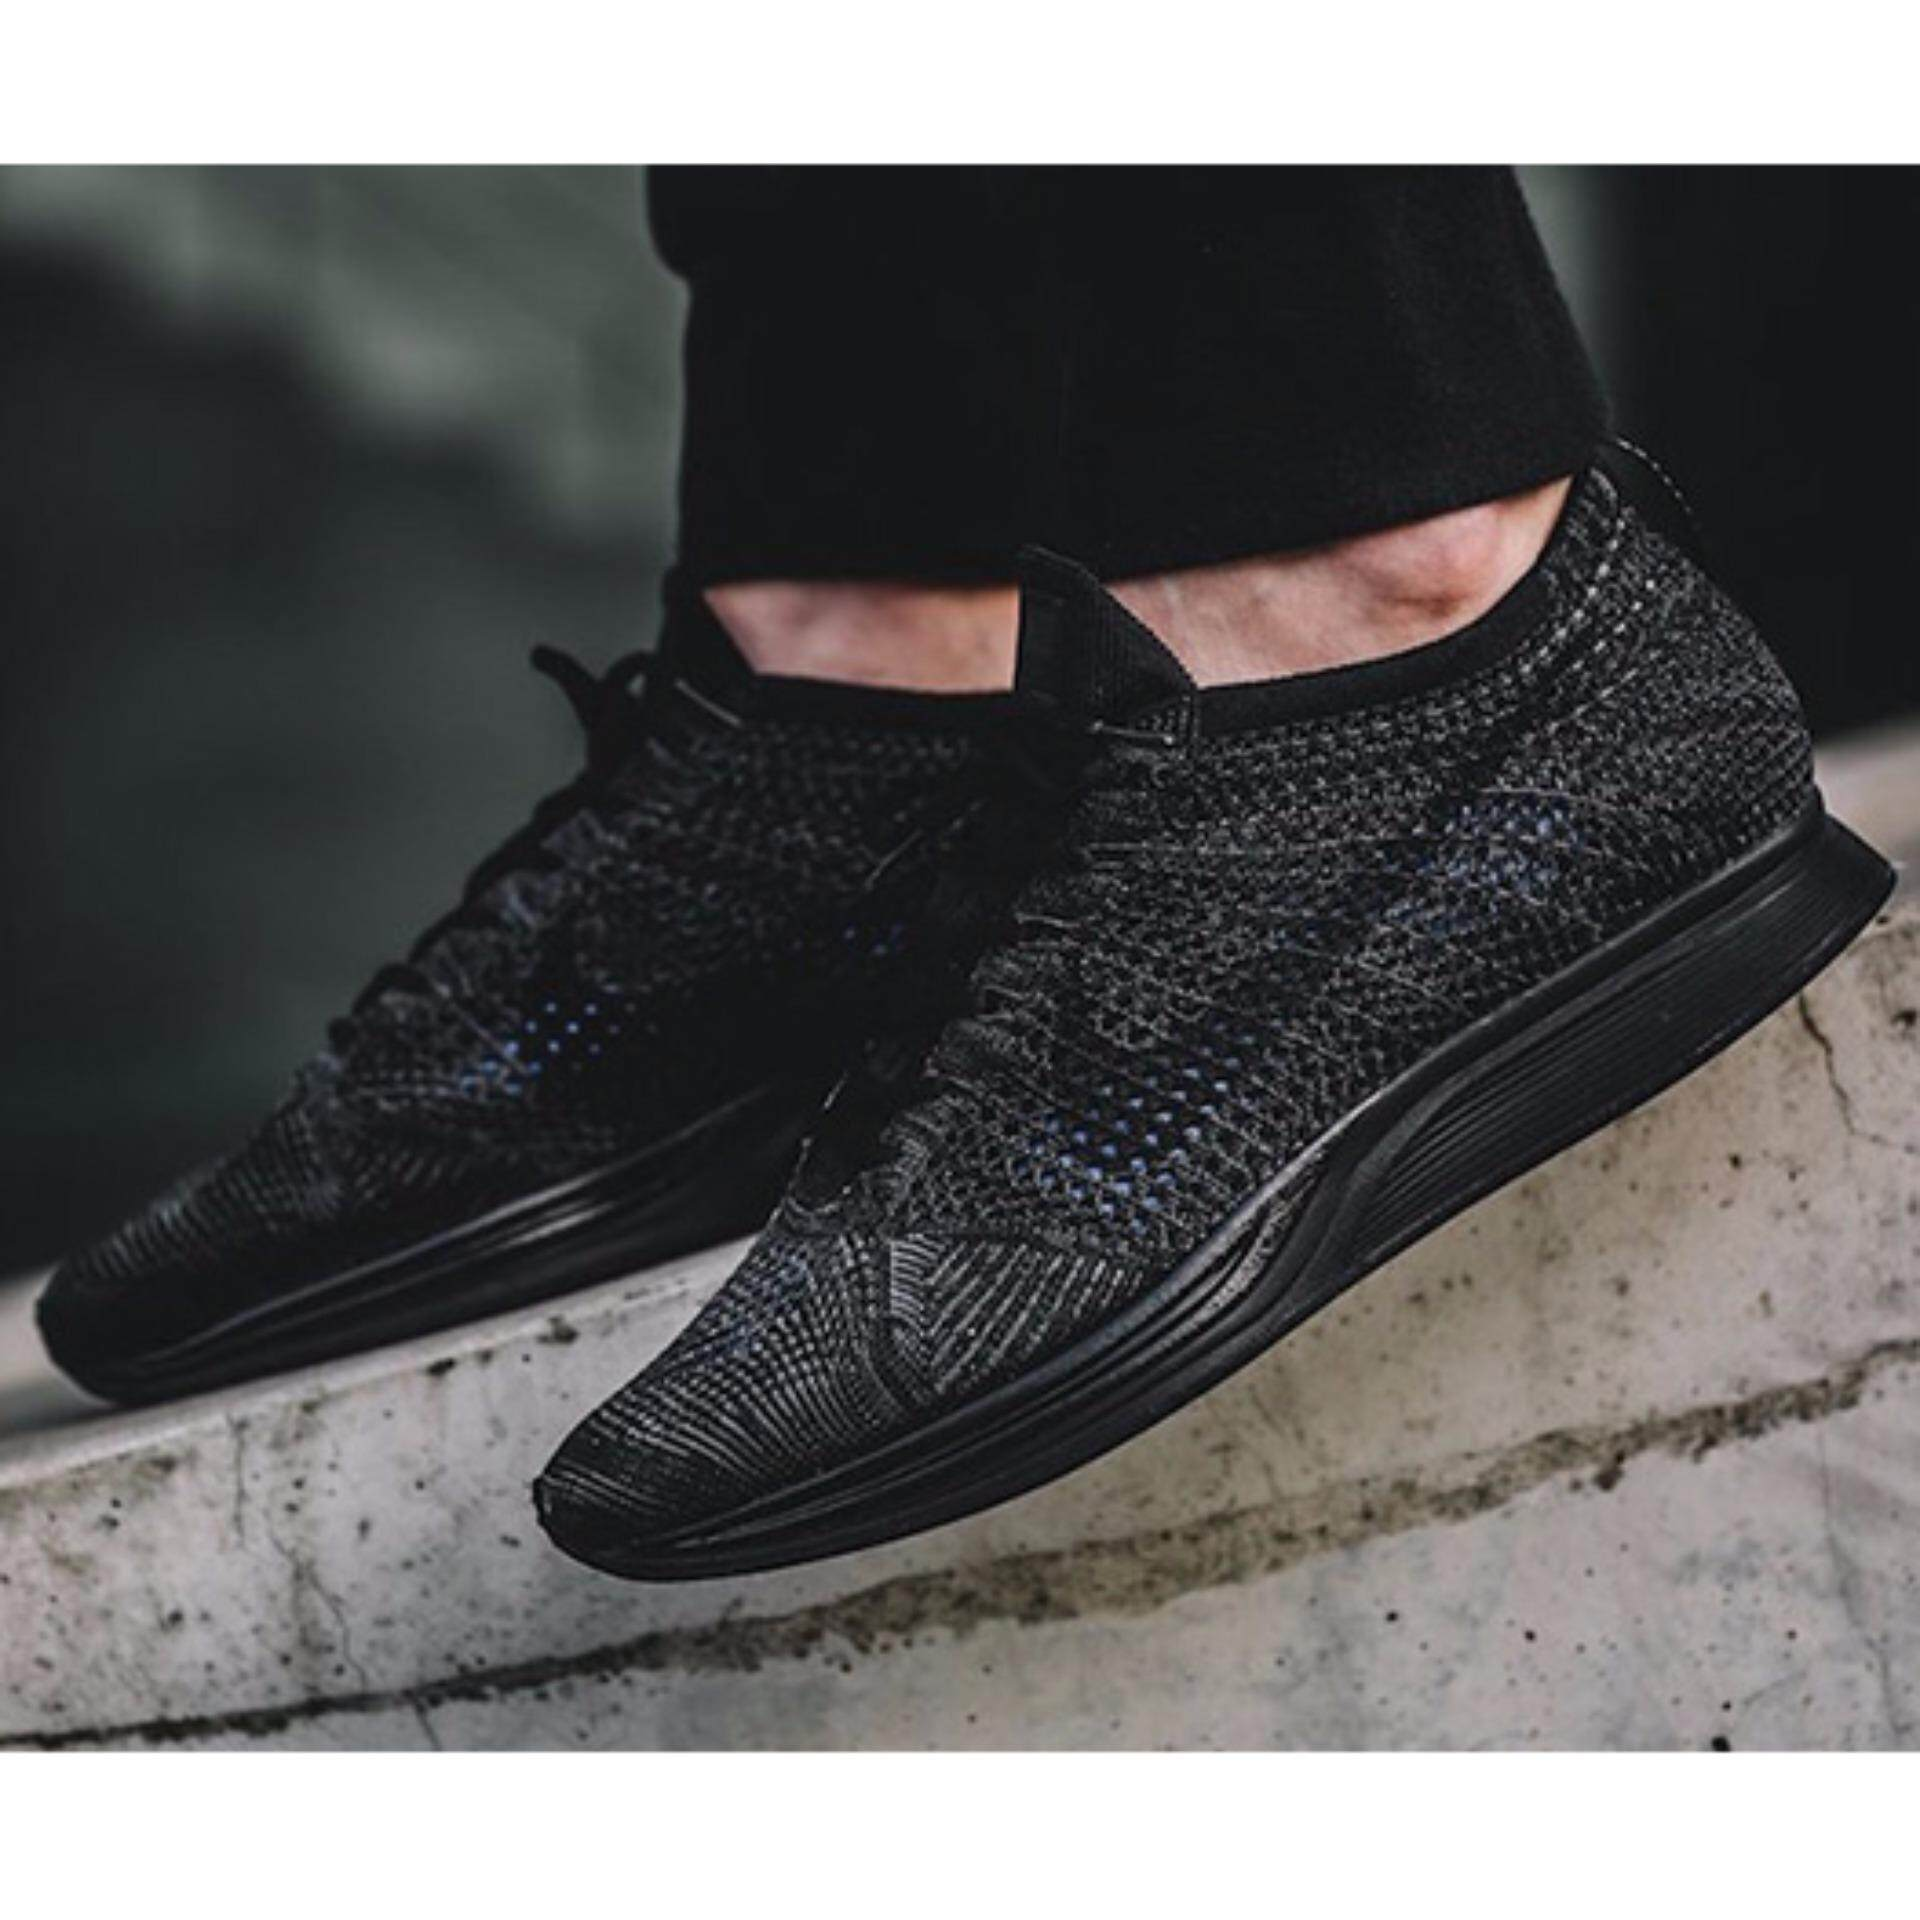 best value c3859 7811d ... top quality share image nike flyknit racer triple black lazada malaysia  09a08 985d1